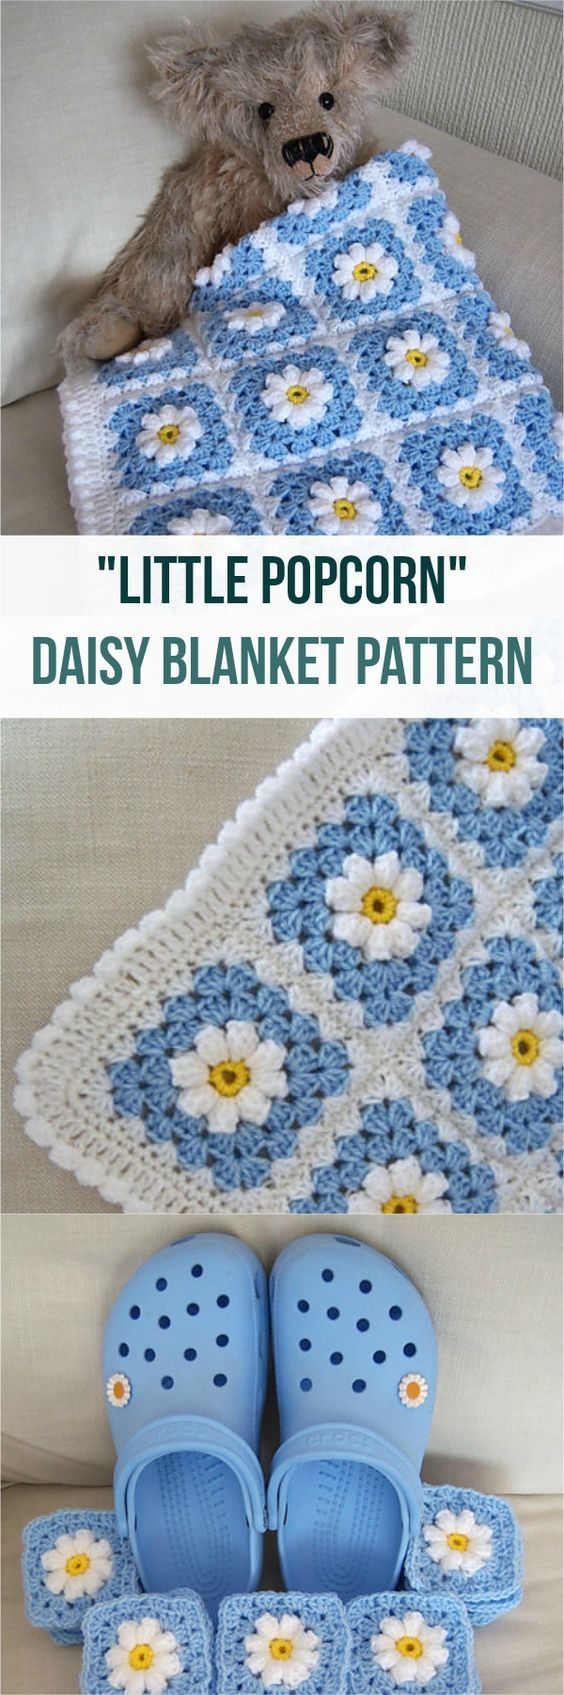 Little Popcorn Daisy Blanket #prettypatterns